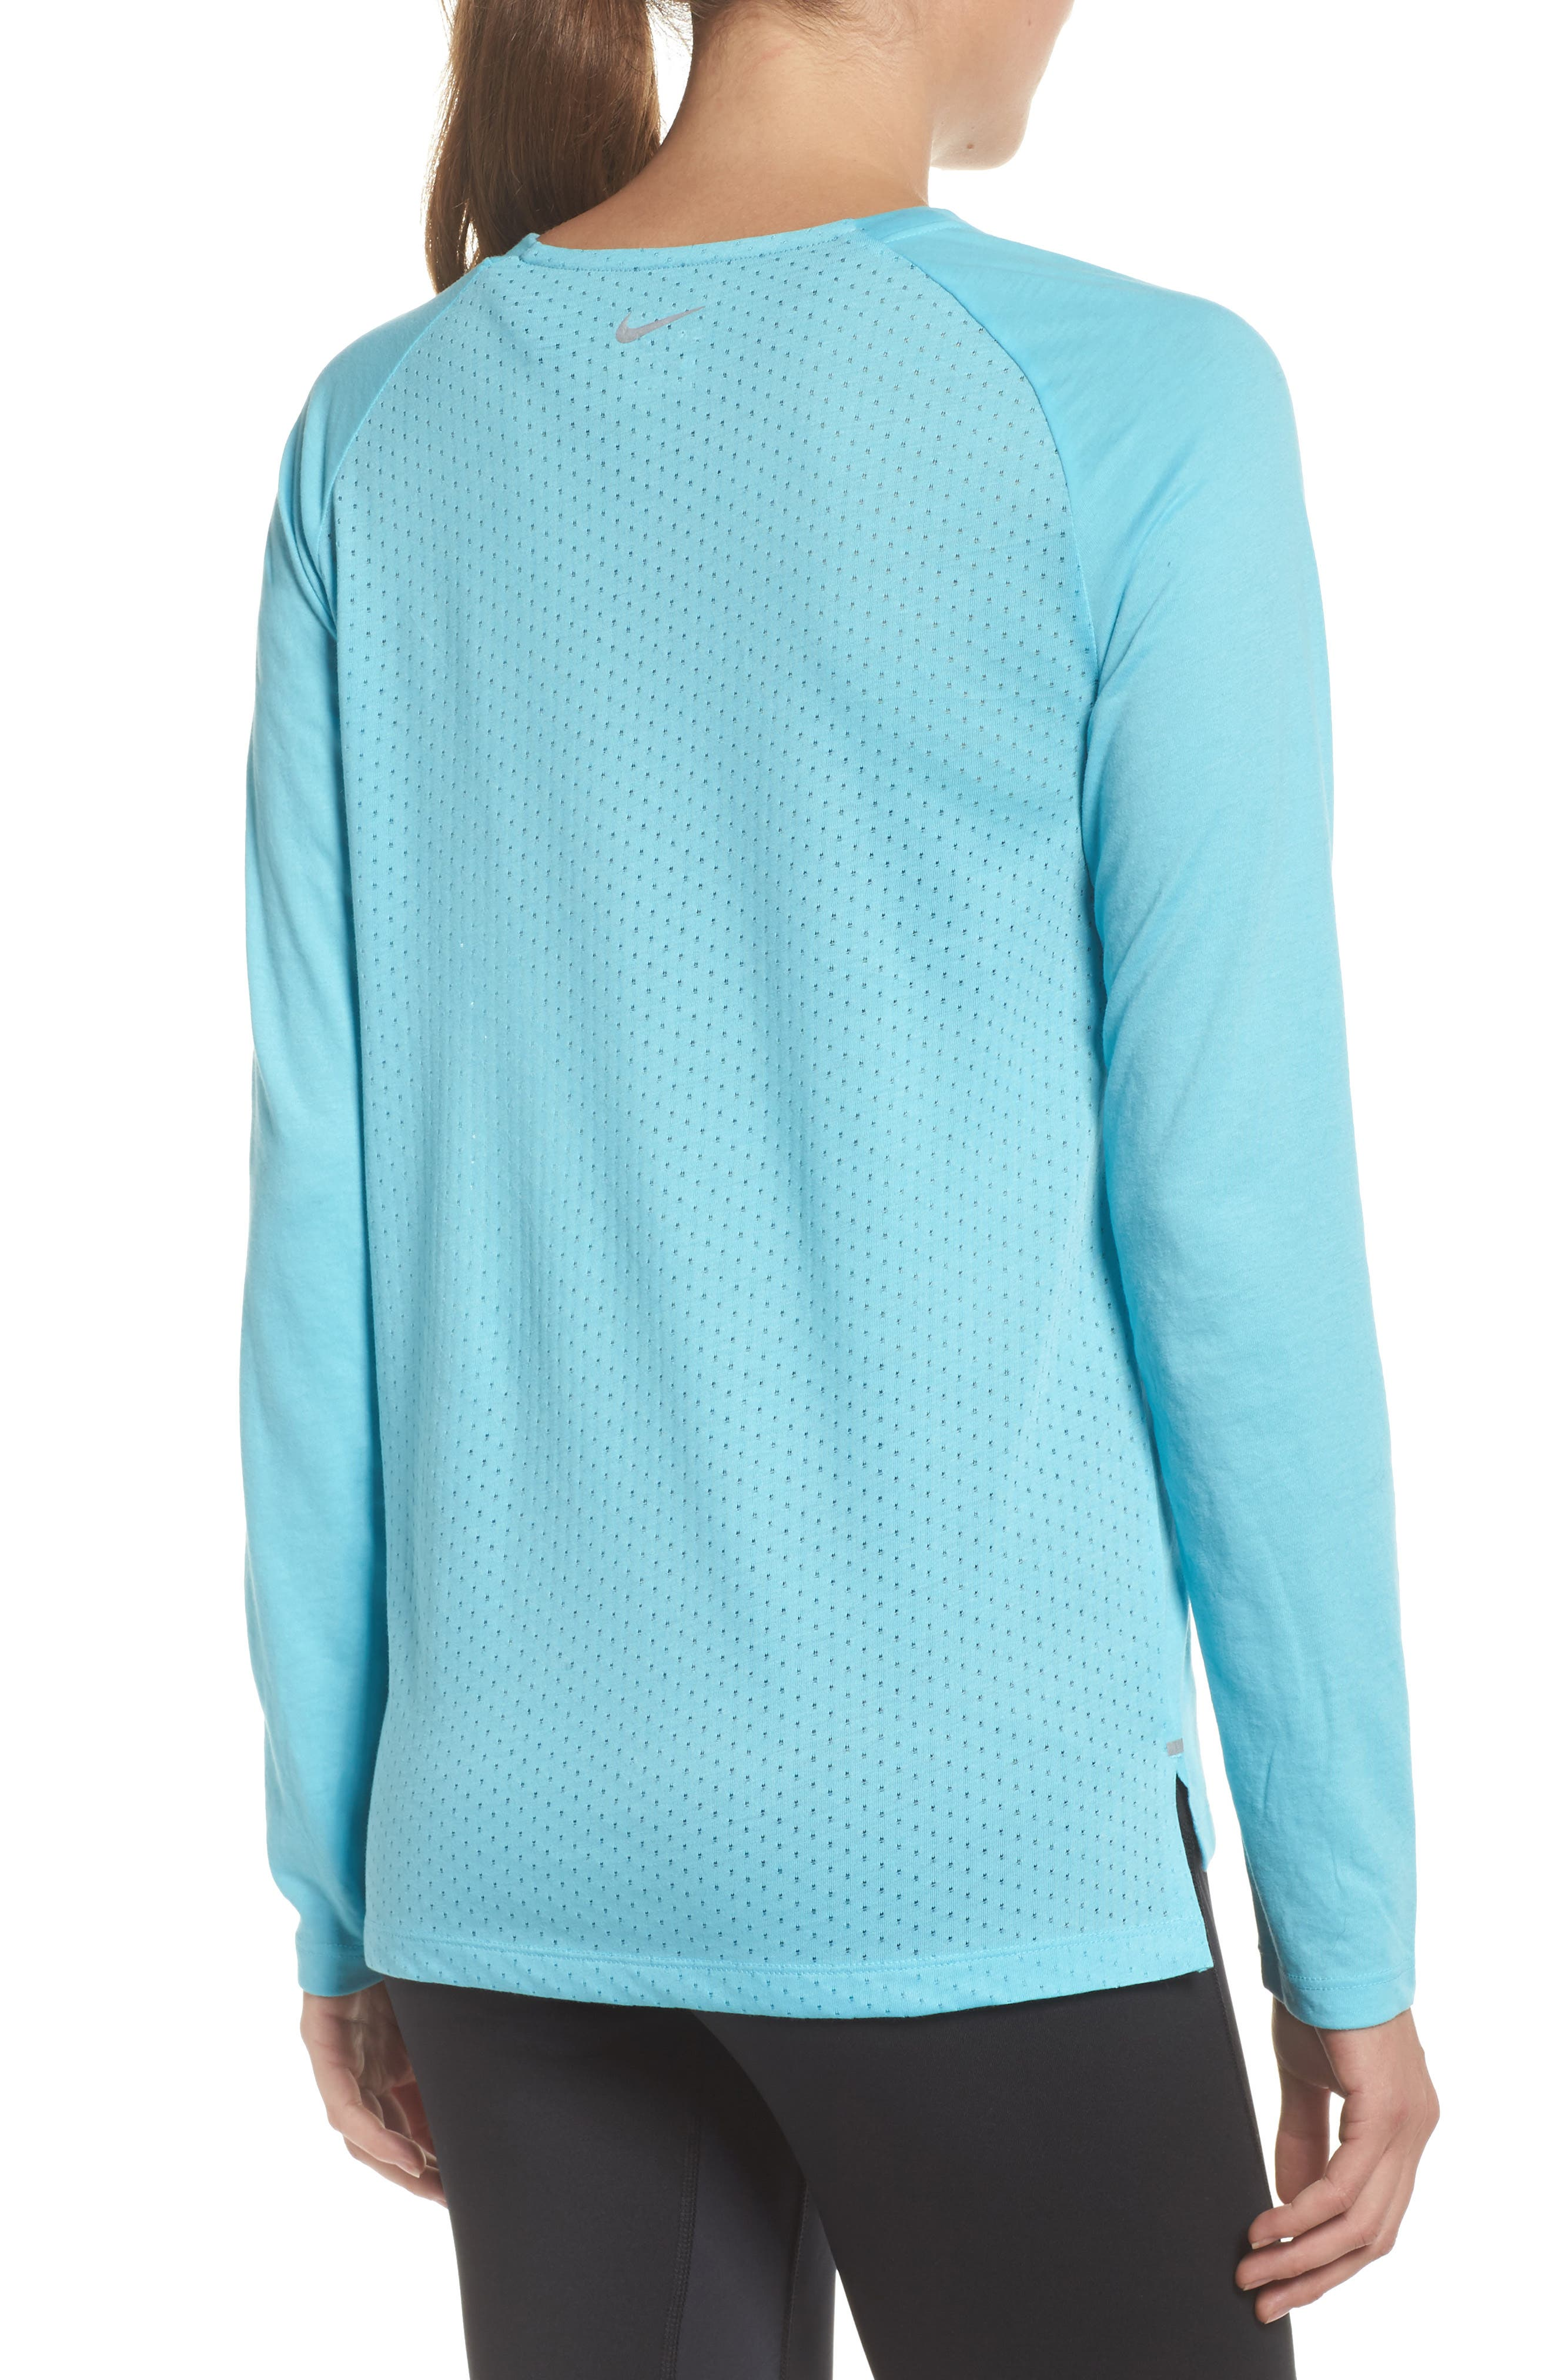 Breathe Tailwind Running Top,                             Alternate thumbnail 4, color,